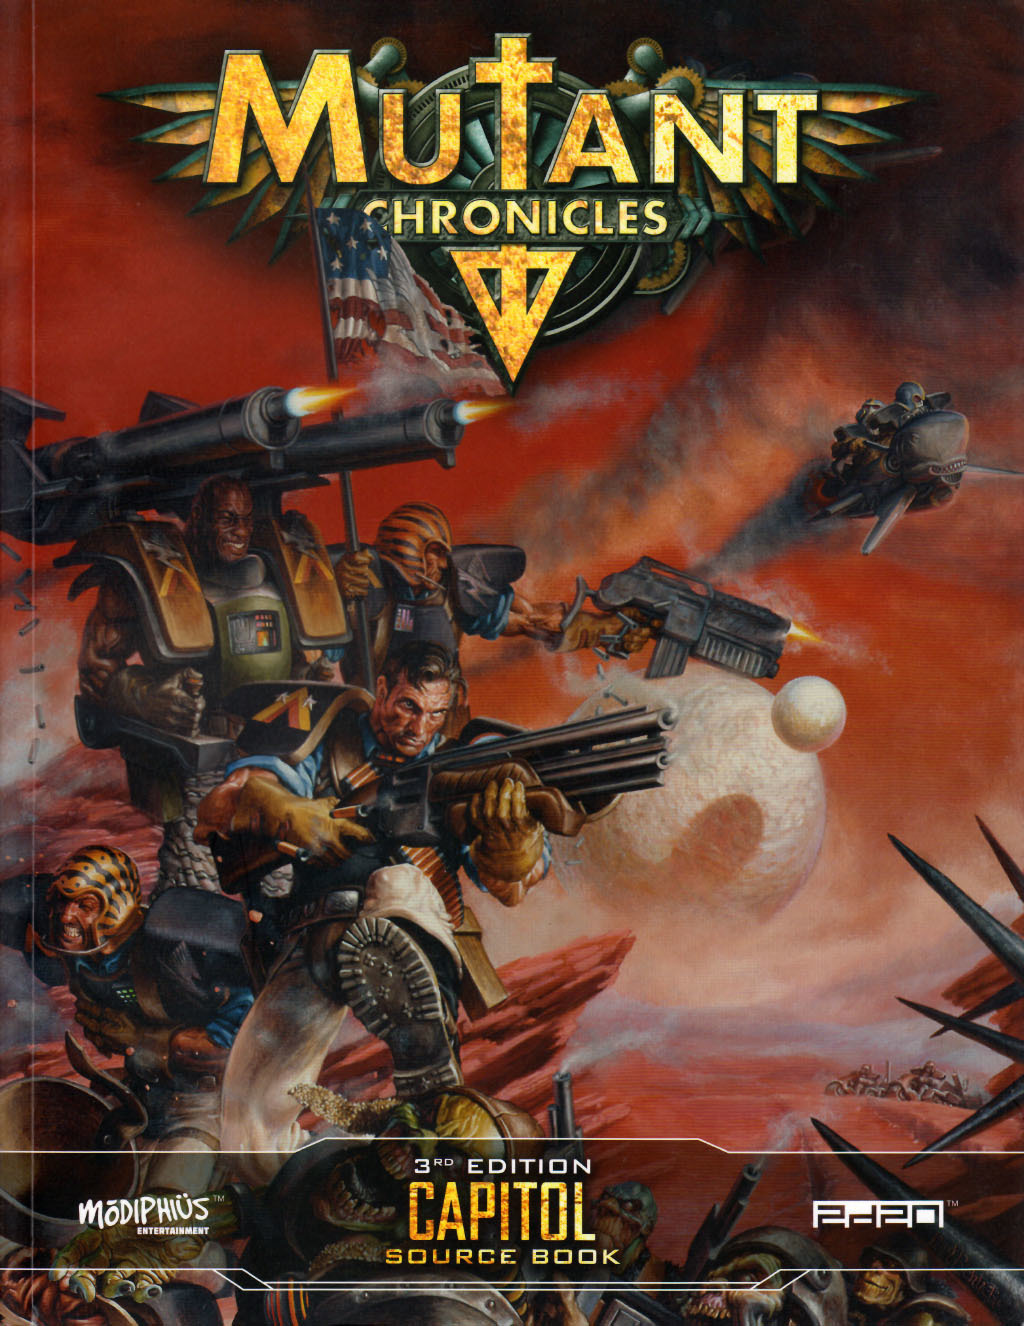 Capitol source book (Mutant Chronicles 3rd edition)